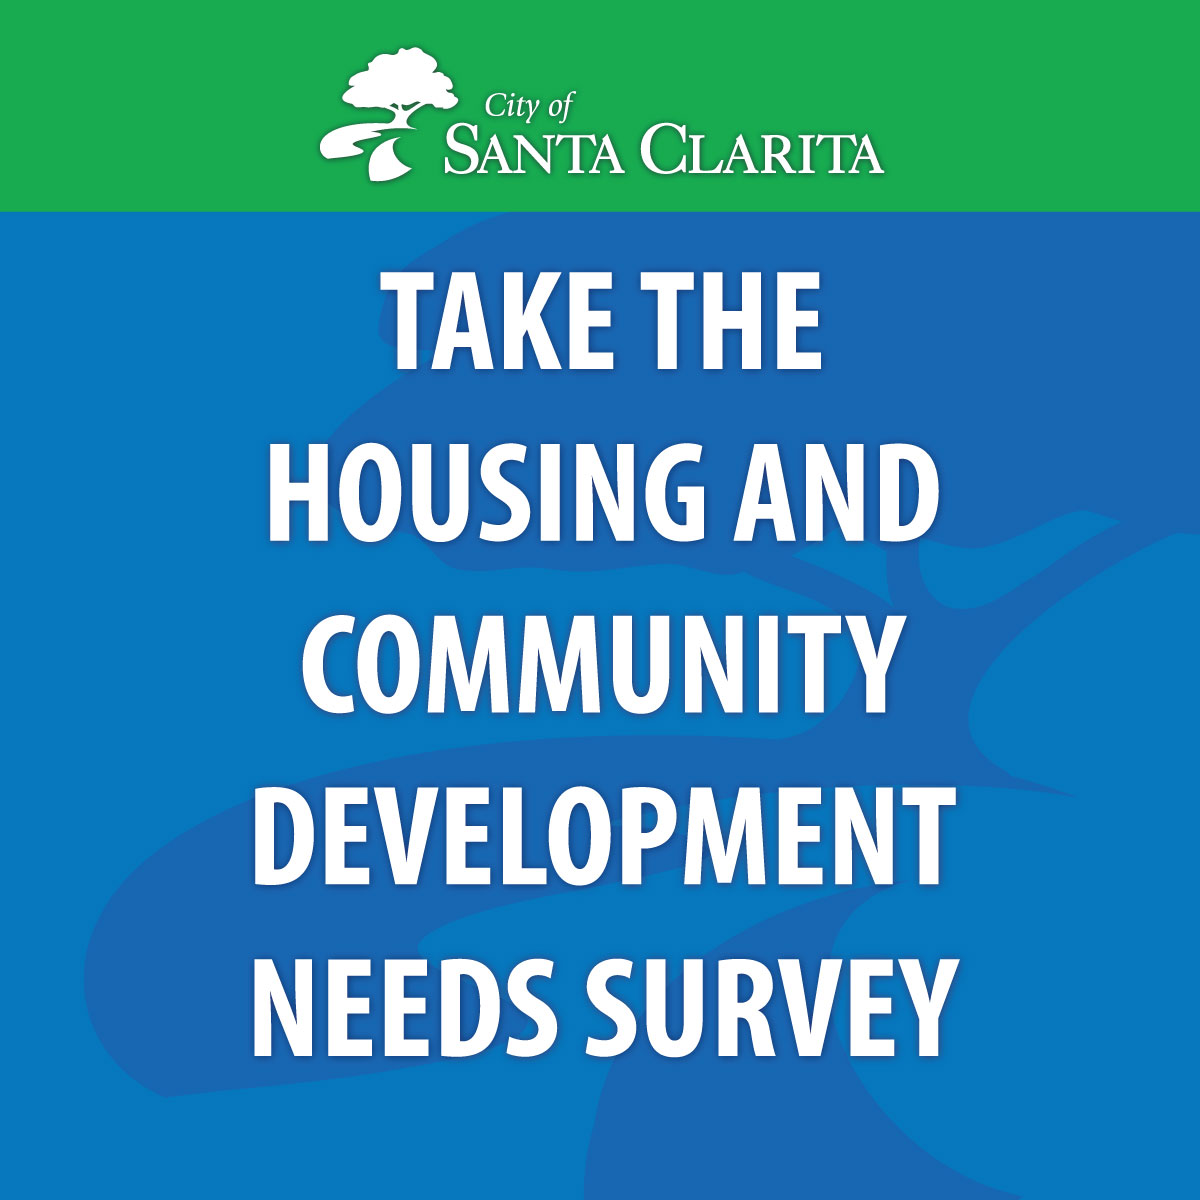 Take the housing and community development needs survey